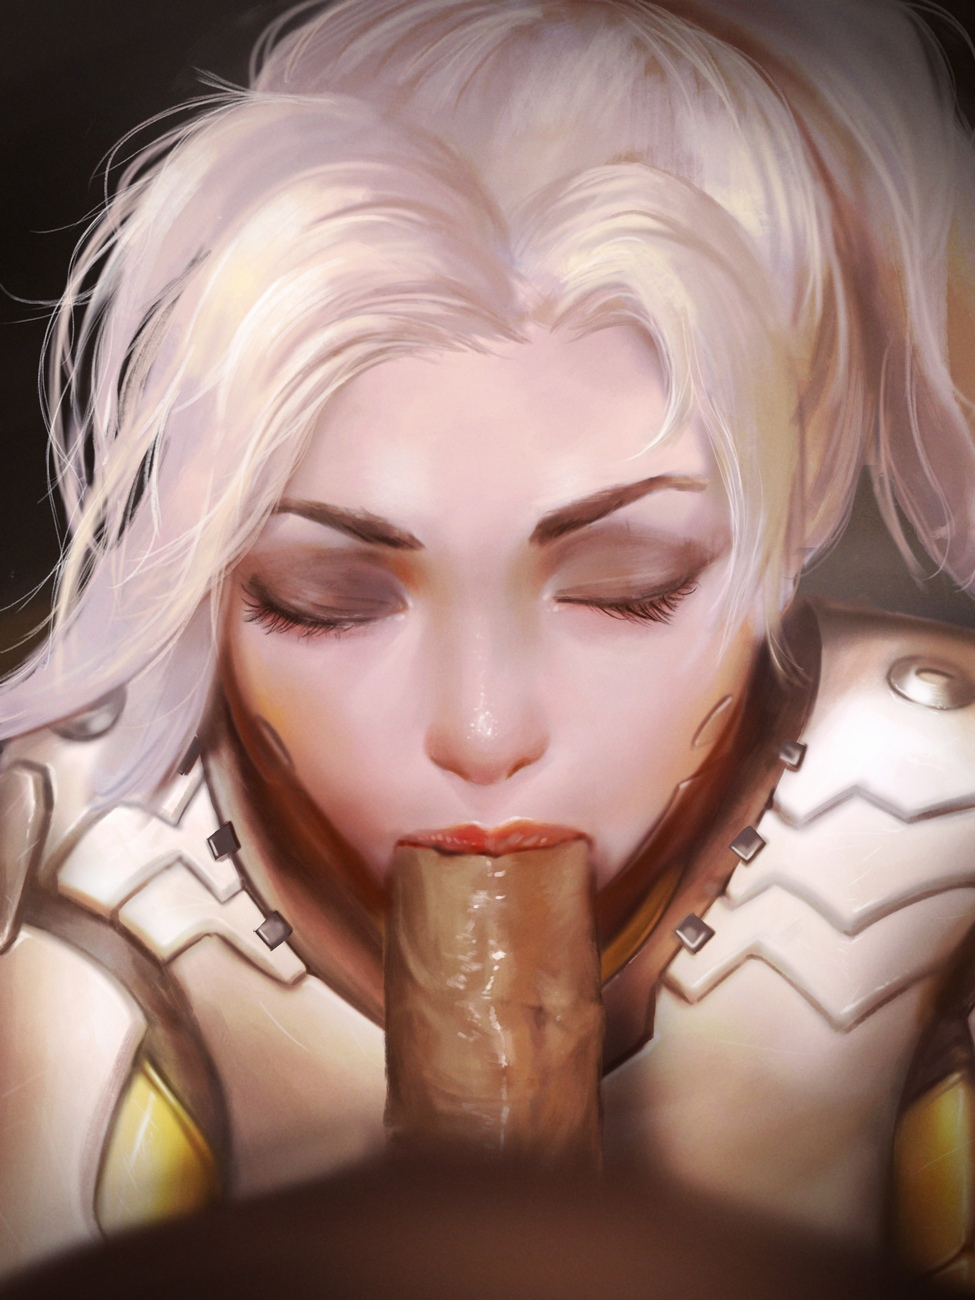 Mercy-The-First-Audition 14 free sex comic